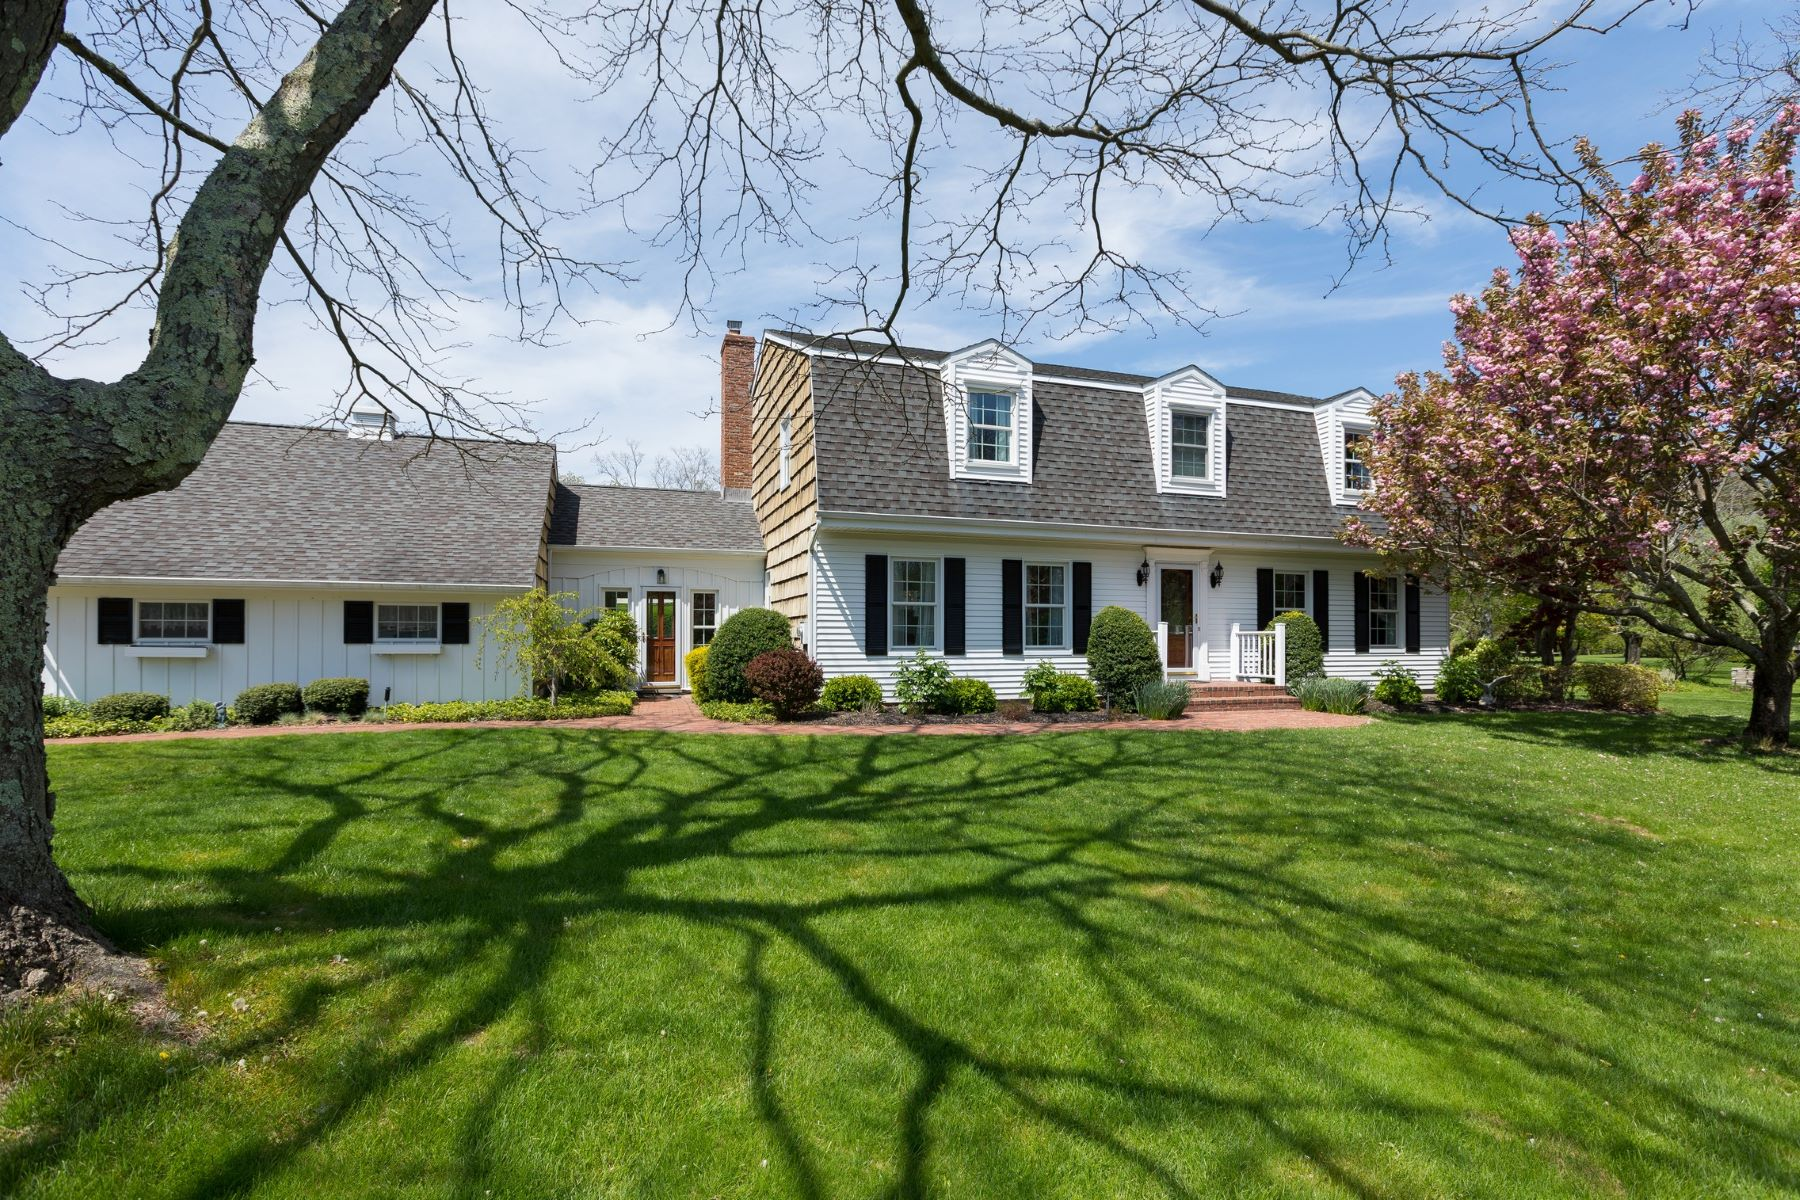 Single Family Home for Active at Southold 215 Garden Ct Southold, New York 11971 United States